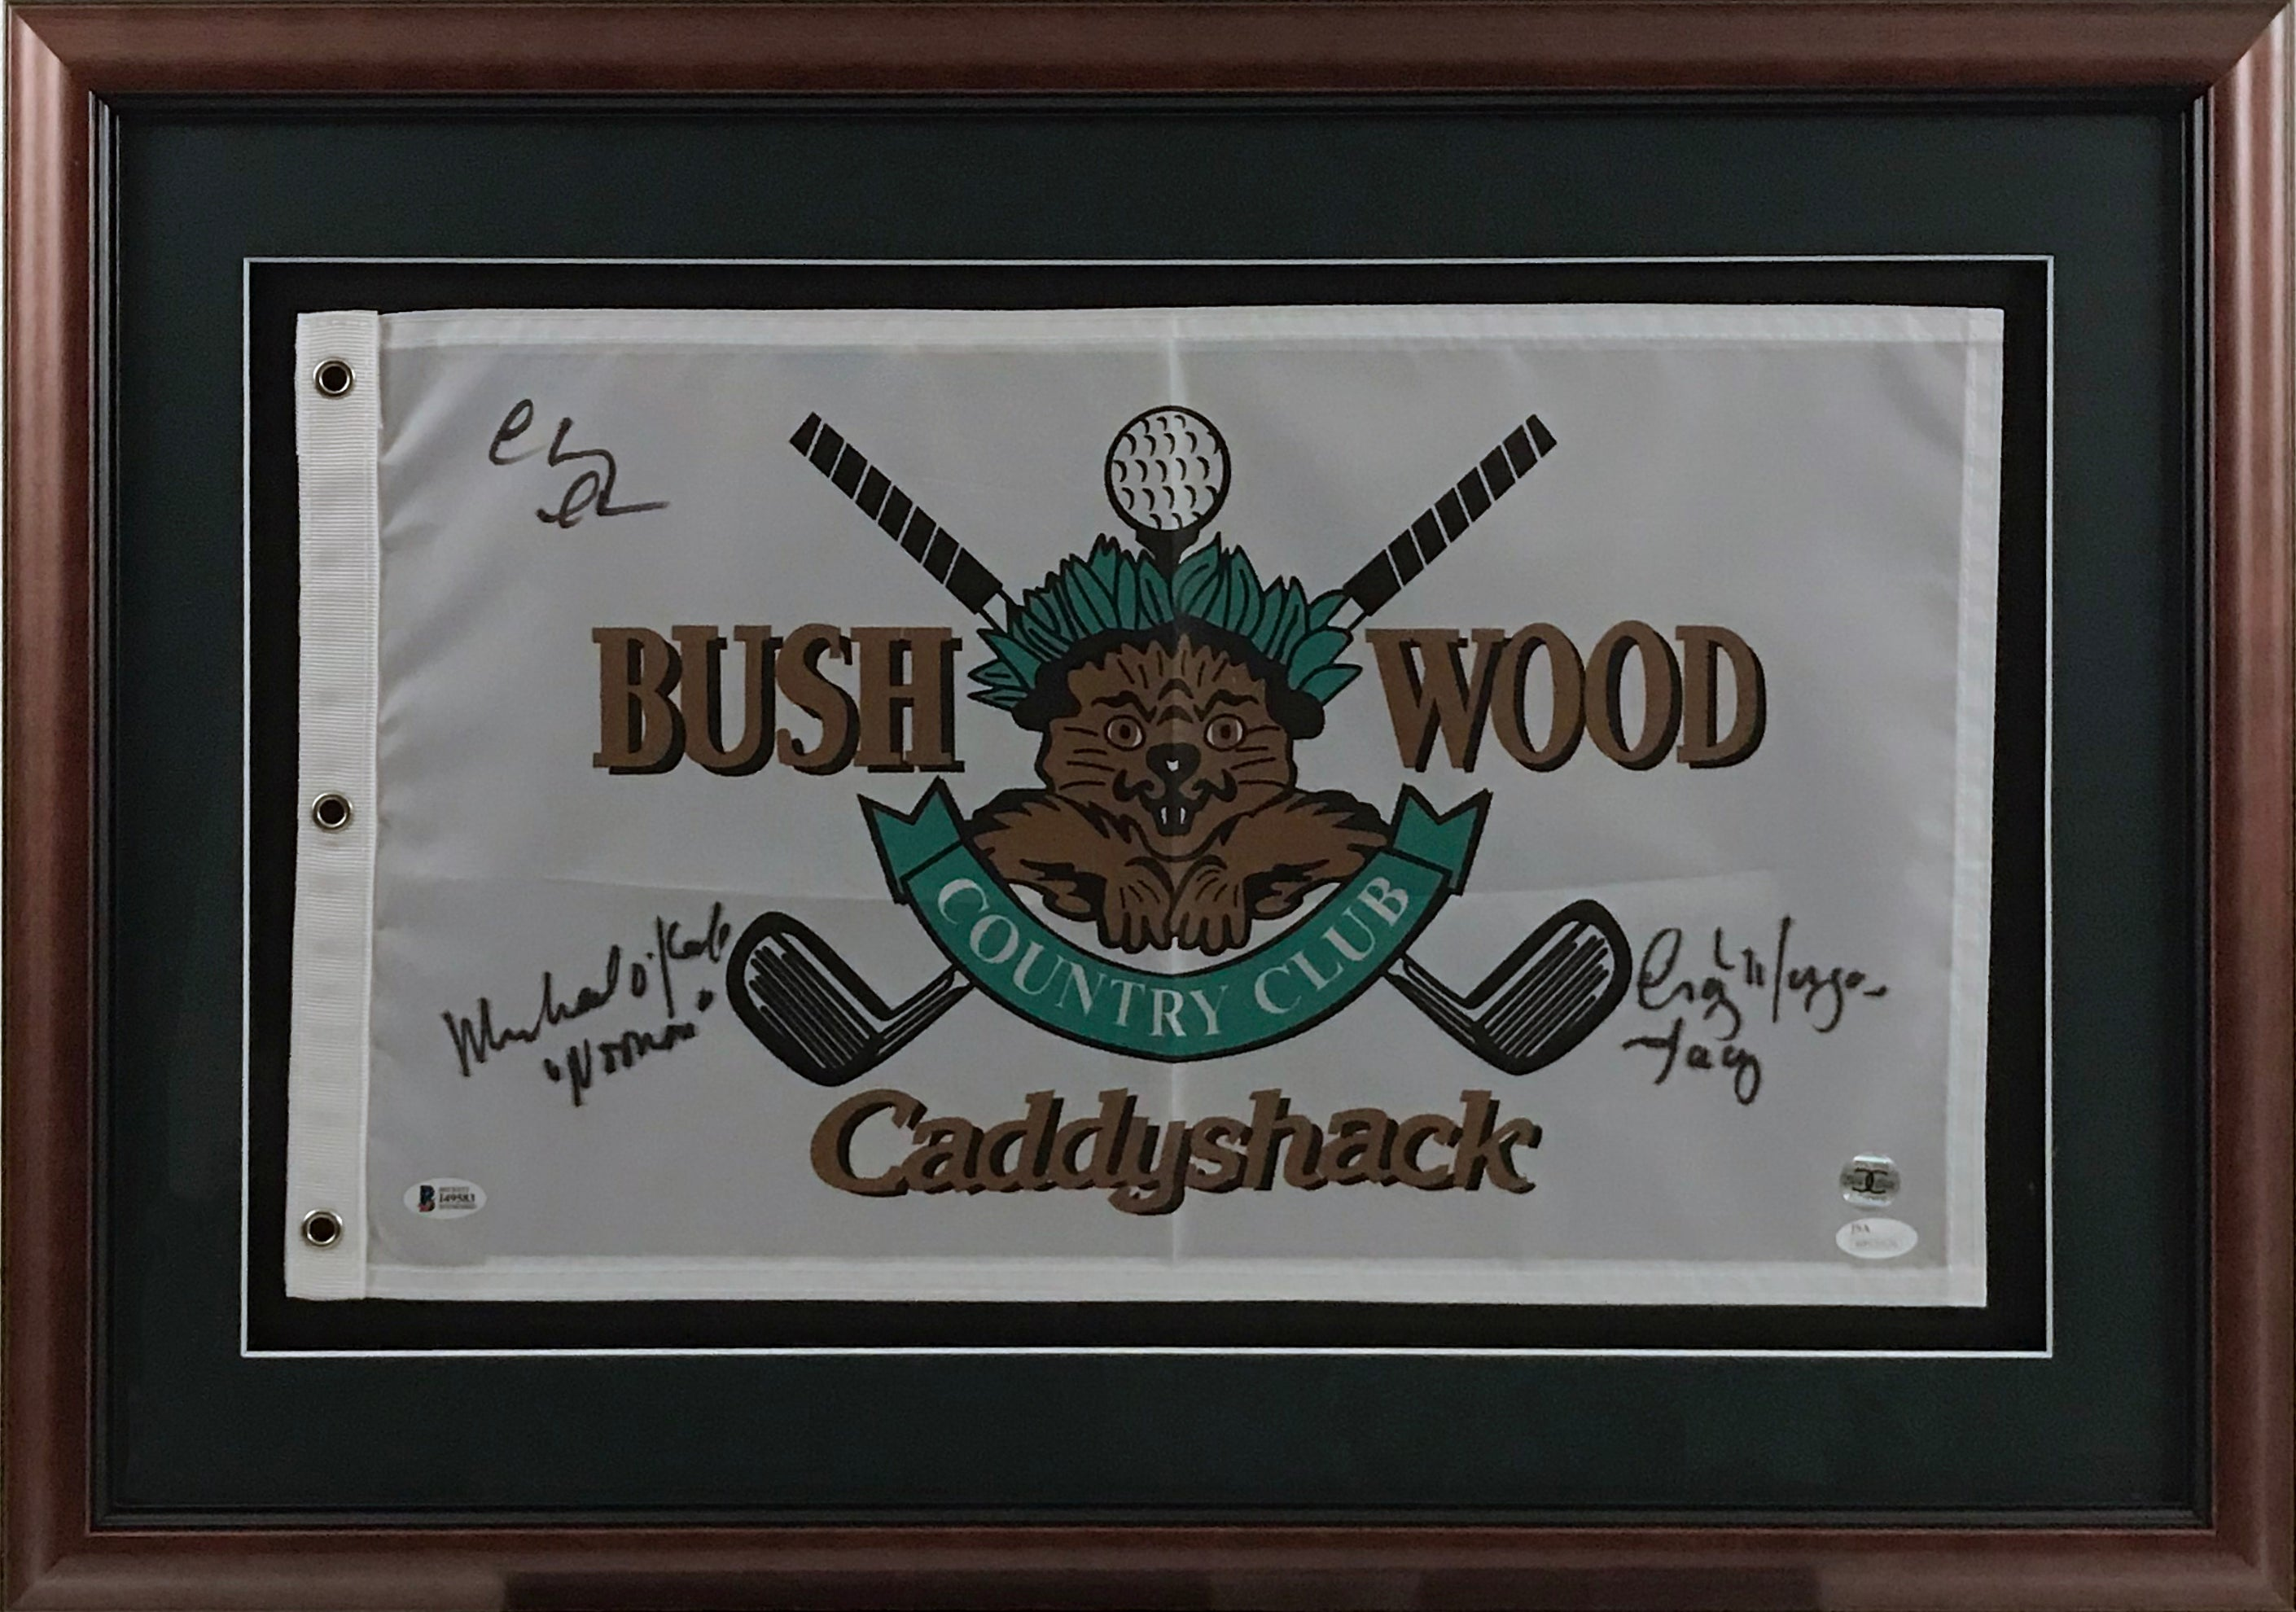 Framed Bushwood Caddyshack Flag Signed by Chase, Morgan, and O'Keefe - Latitude Sports Marketing